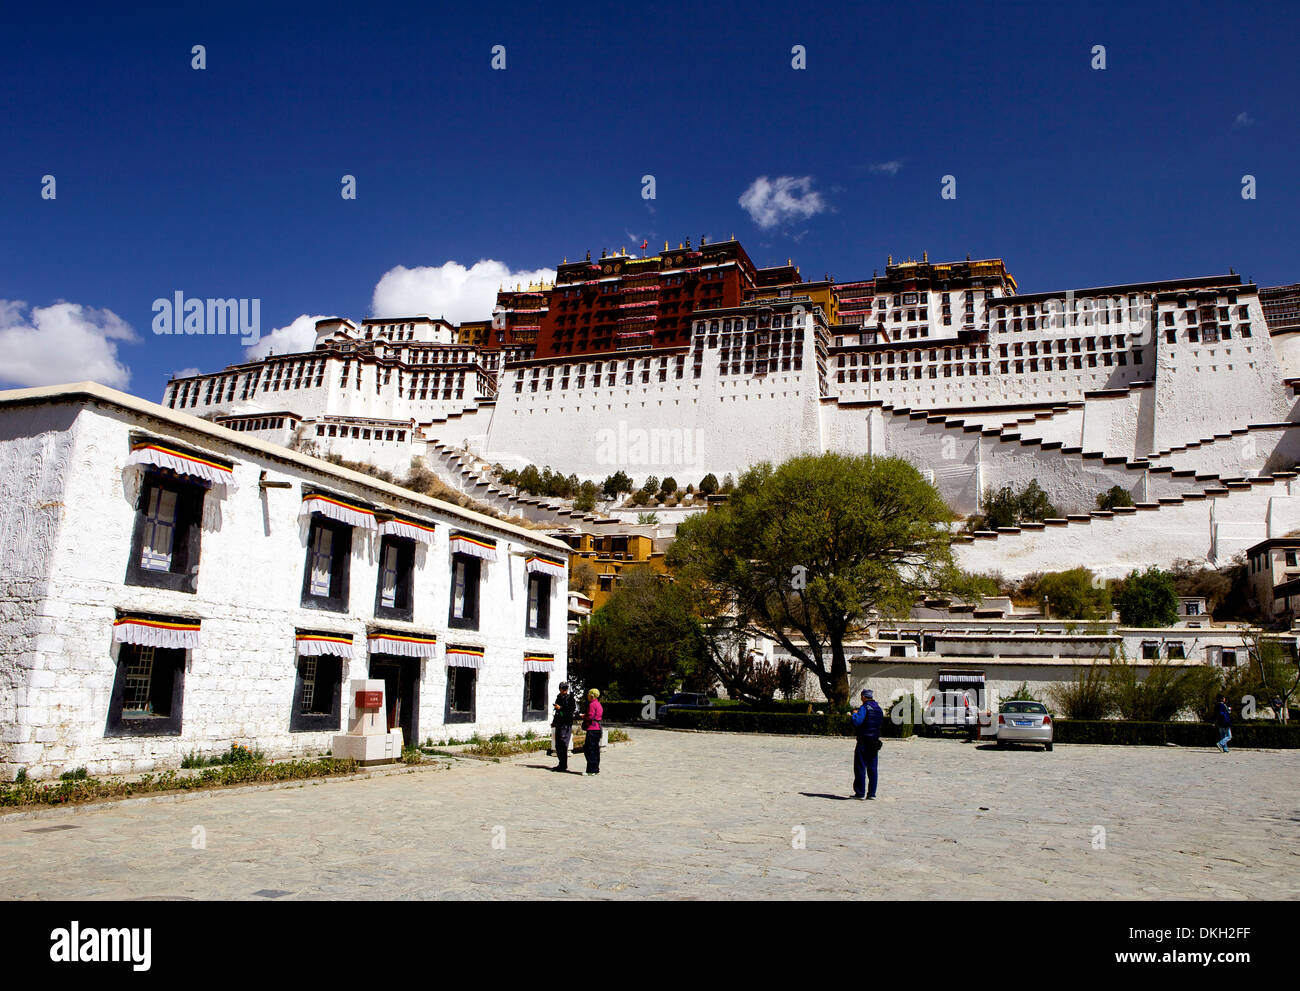 The Potala Palace, UNESCO World Heritage Site, Lhasa, Tibet, China, Asia - Stock Image